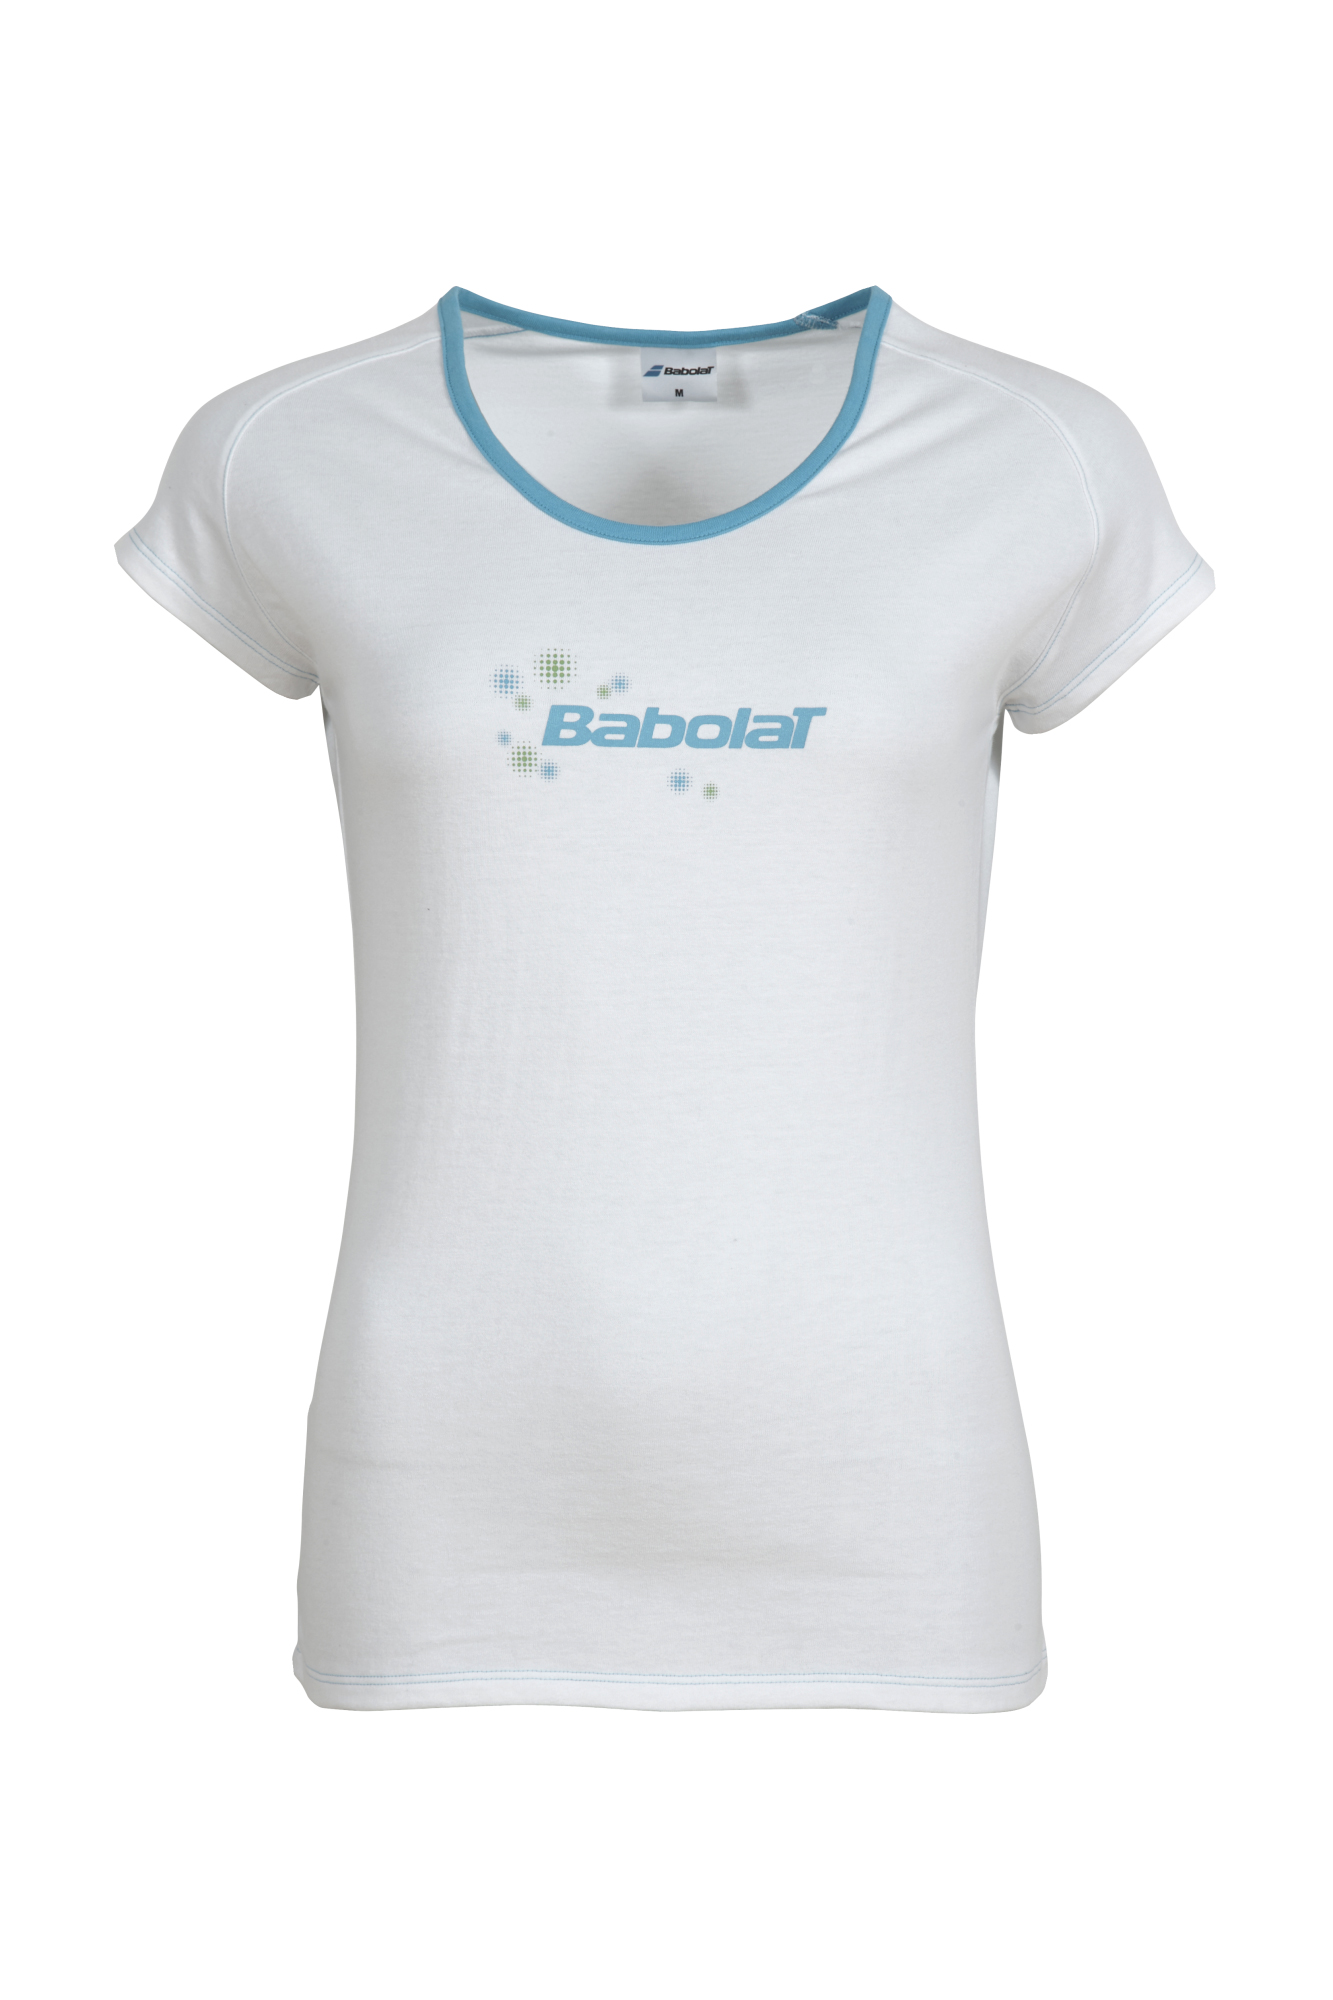 Babolat T-Shirt Women Training Basic White 2015 S